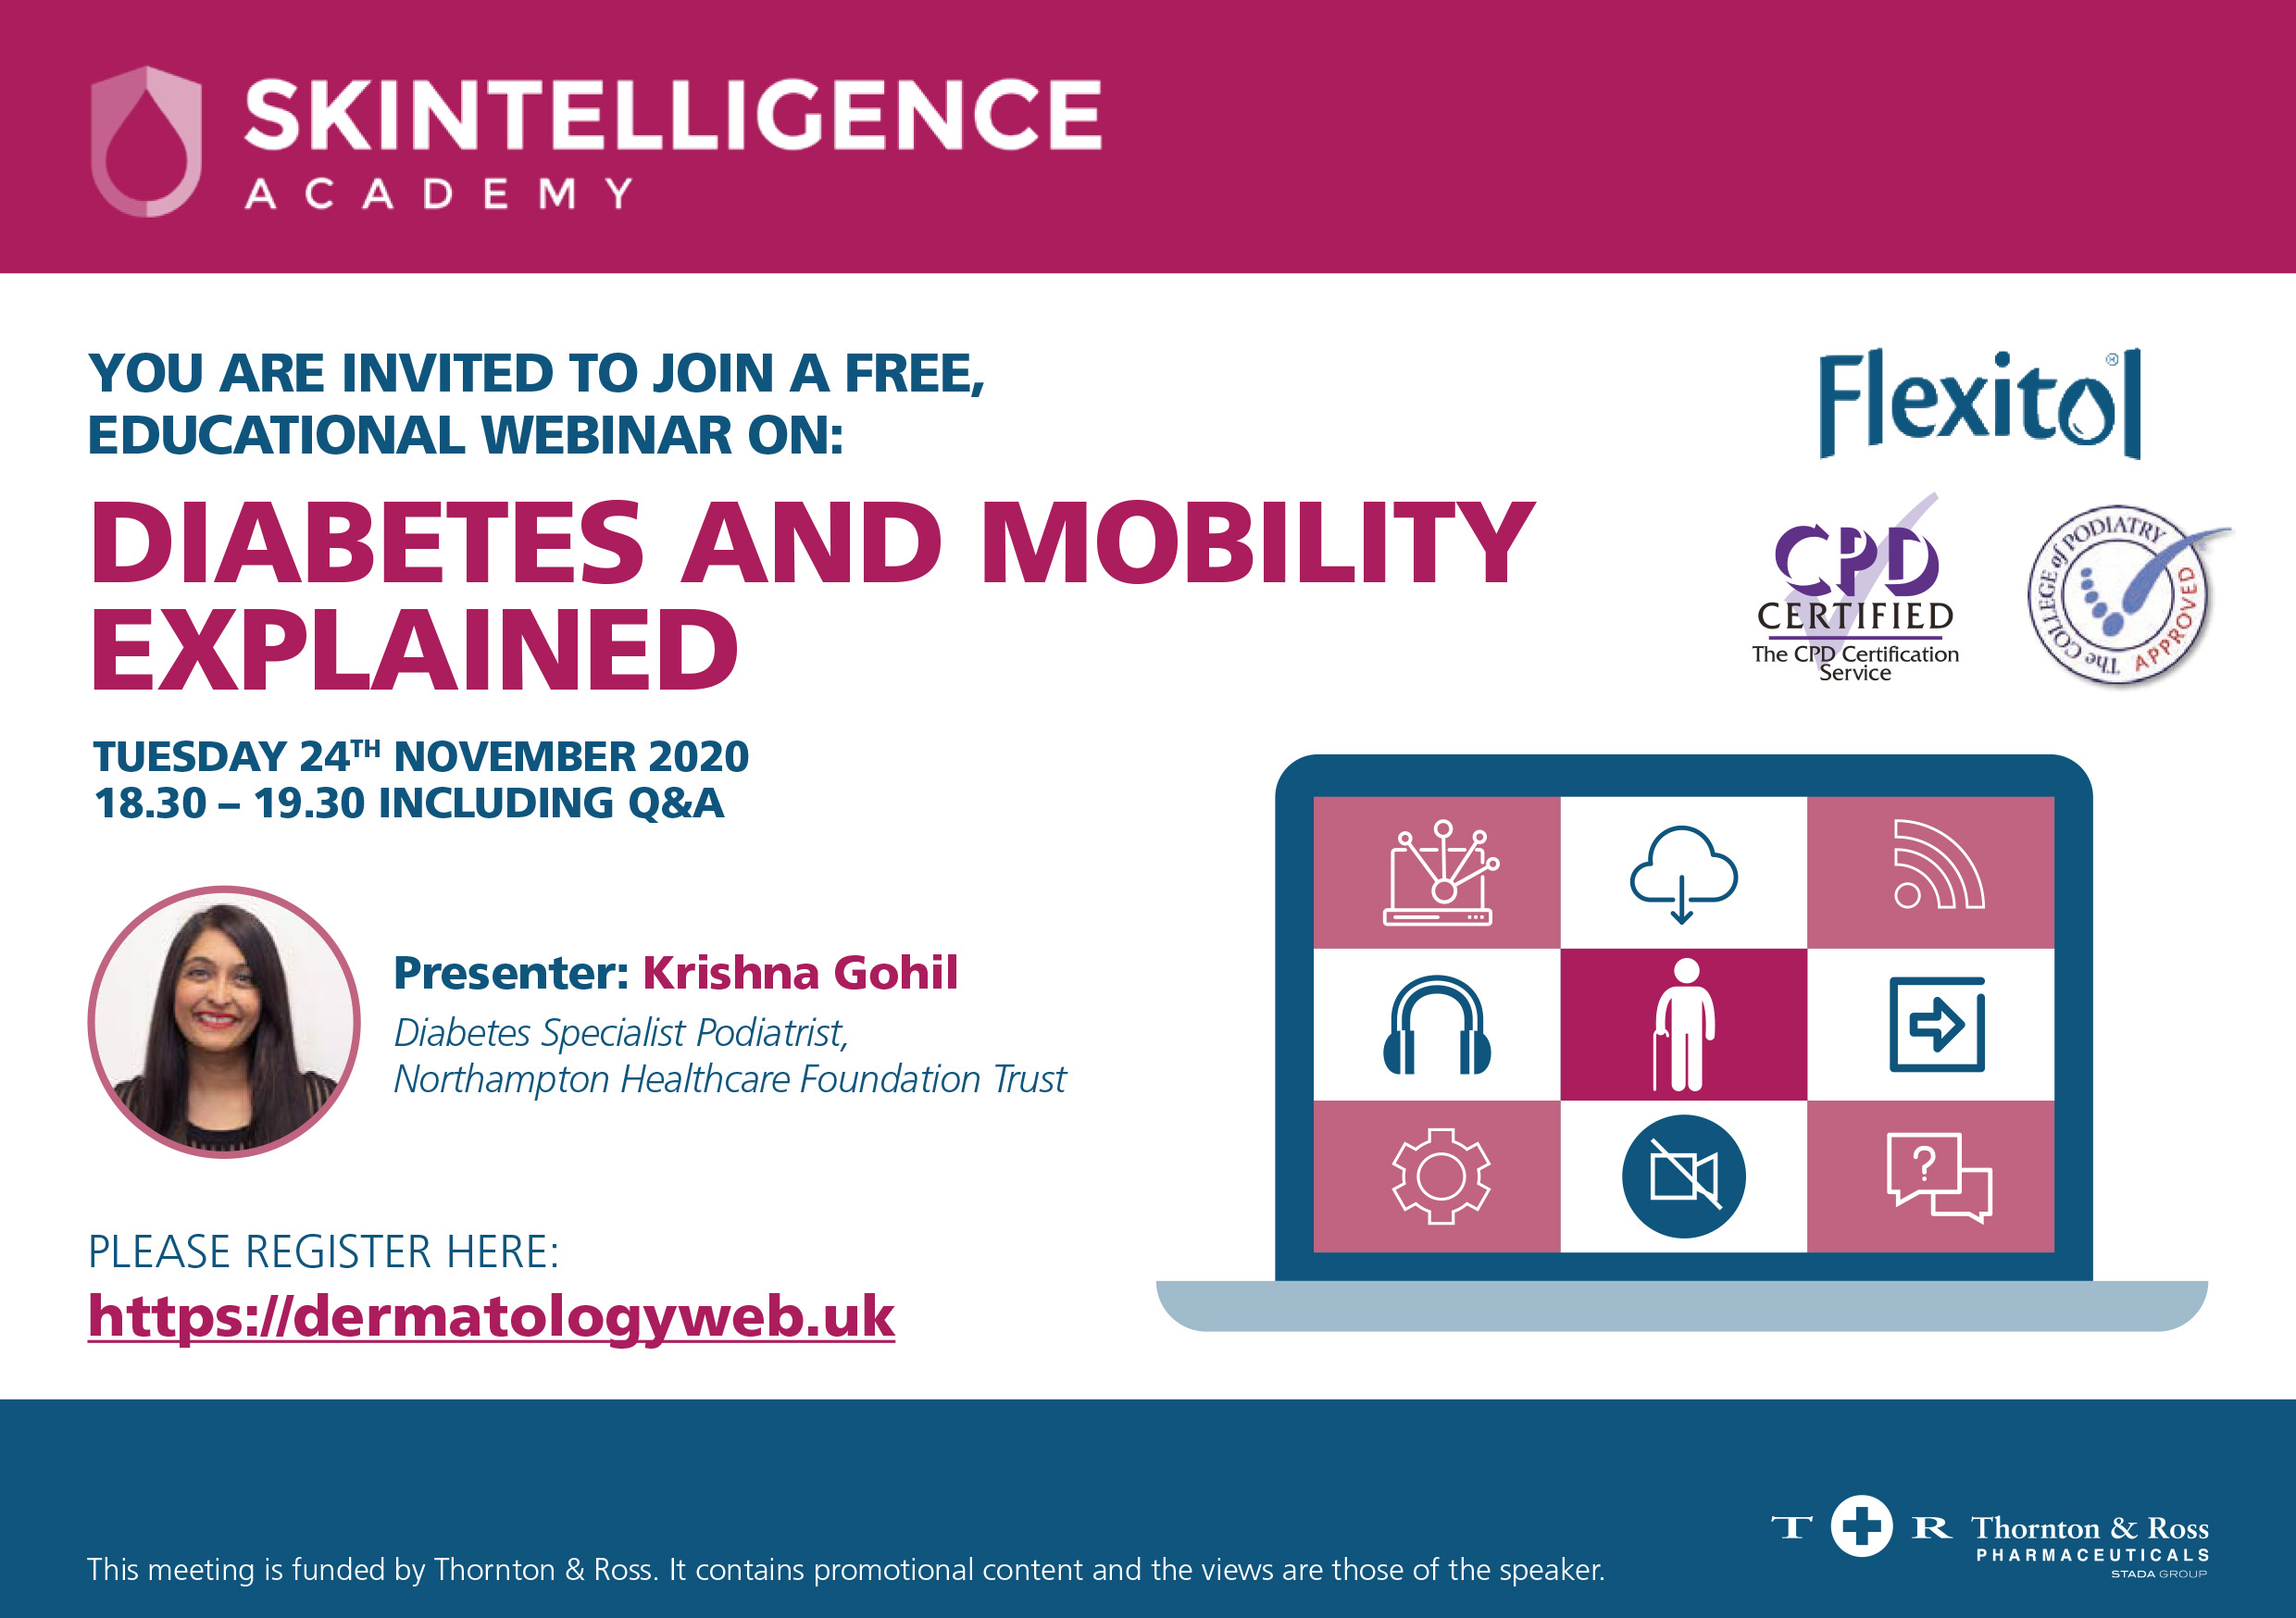 01444-01 Diabetes & Mobility Explained Webinar 24Nov v2.indd